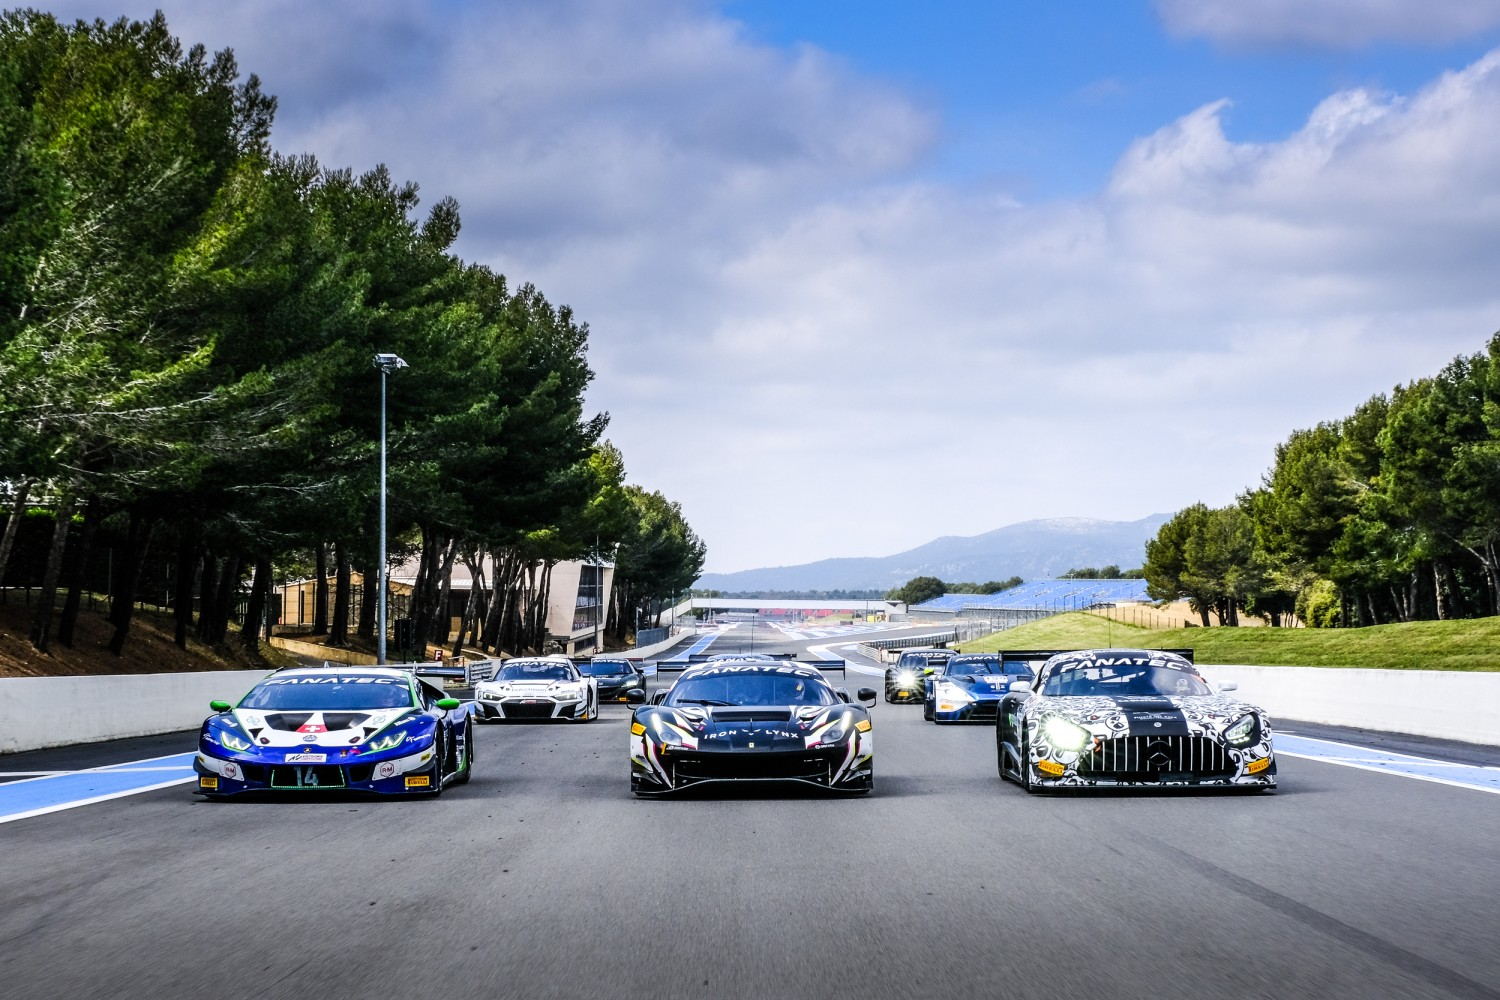 Fanatec GT World Challenge Europe Powered by AWS completes successful pre-season test at Circuit Paul Ricard